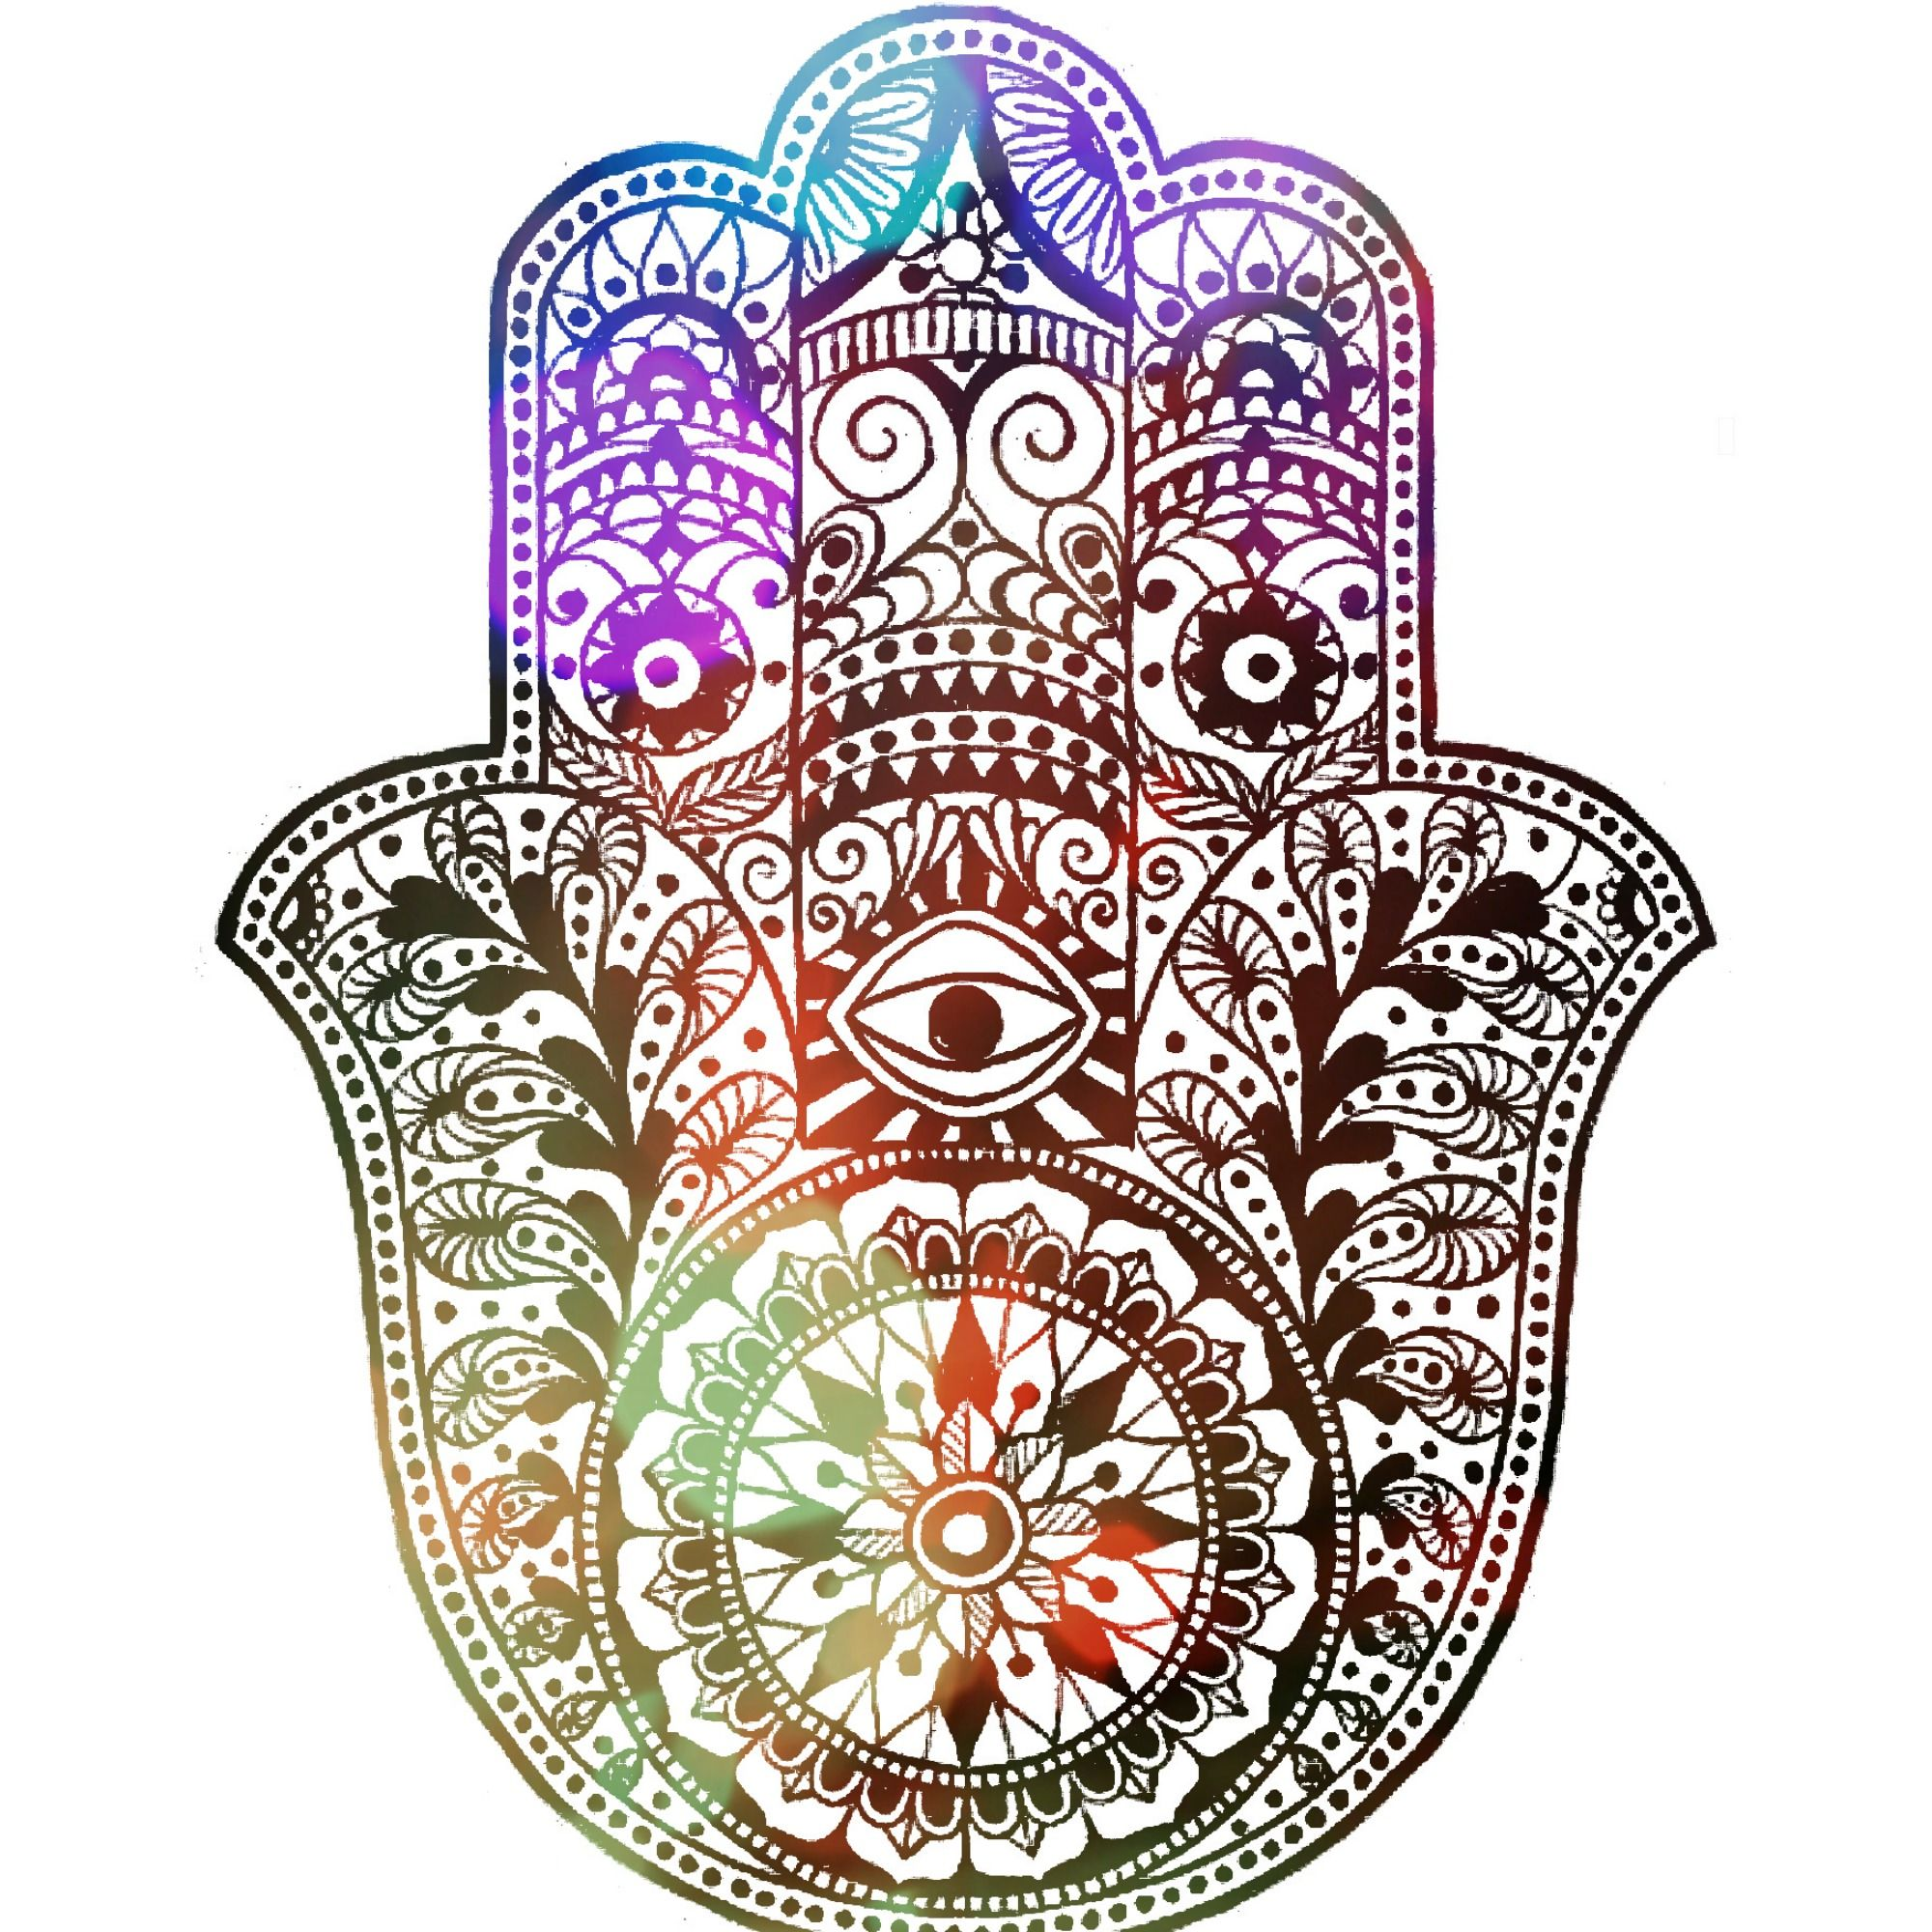 Hamsa Iphone Background Phone Wallpaper Patterns Hamsa Iphone Background